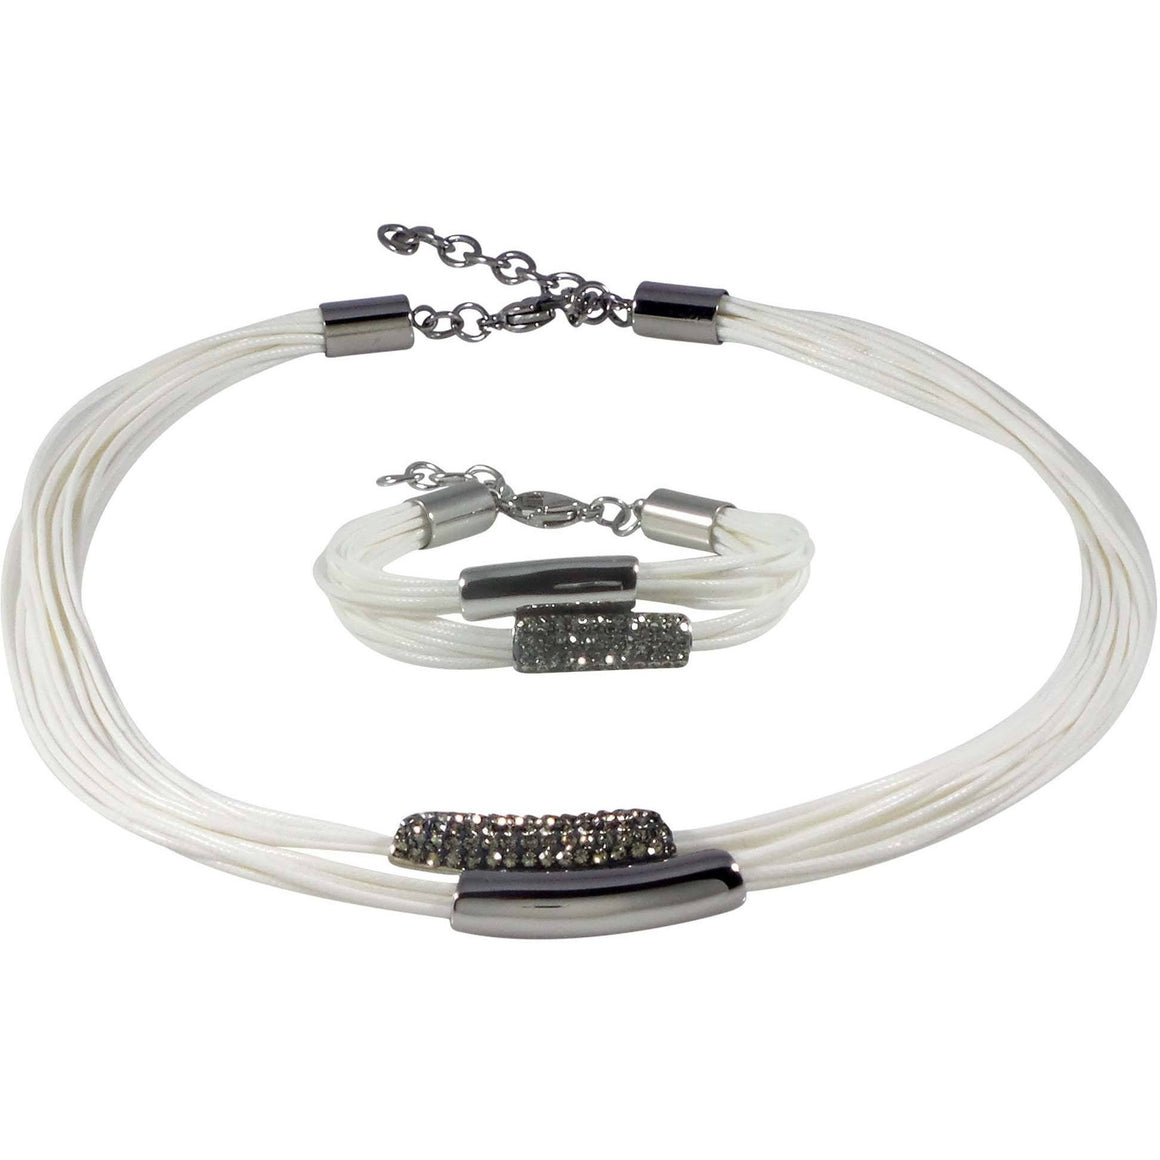 Stainless Steel Necklace and Bracelet Set White Wax Poly Cords Crystals Adjustable Clasp - Beads and Dangles